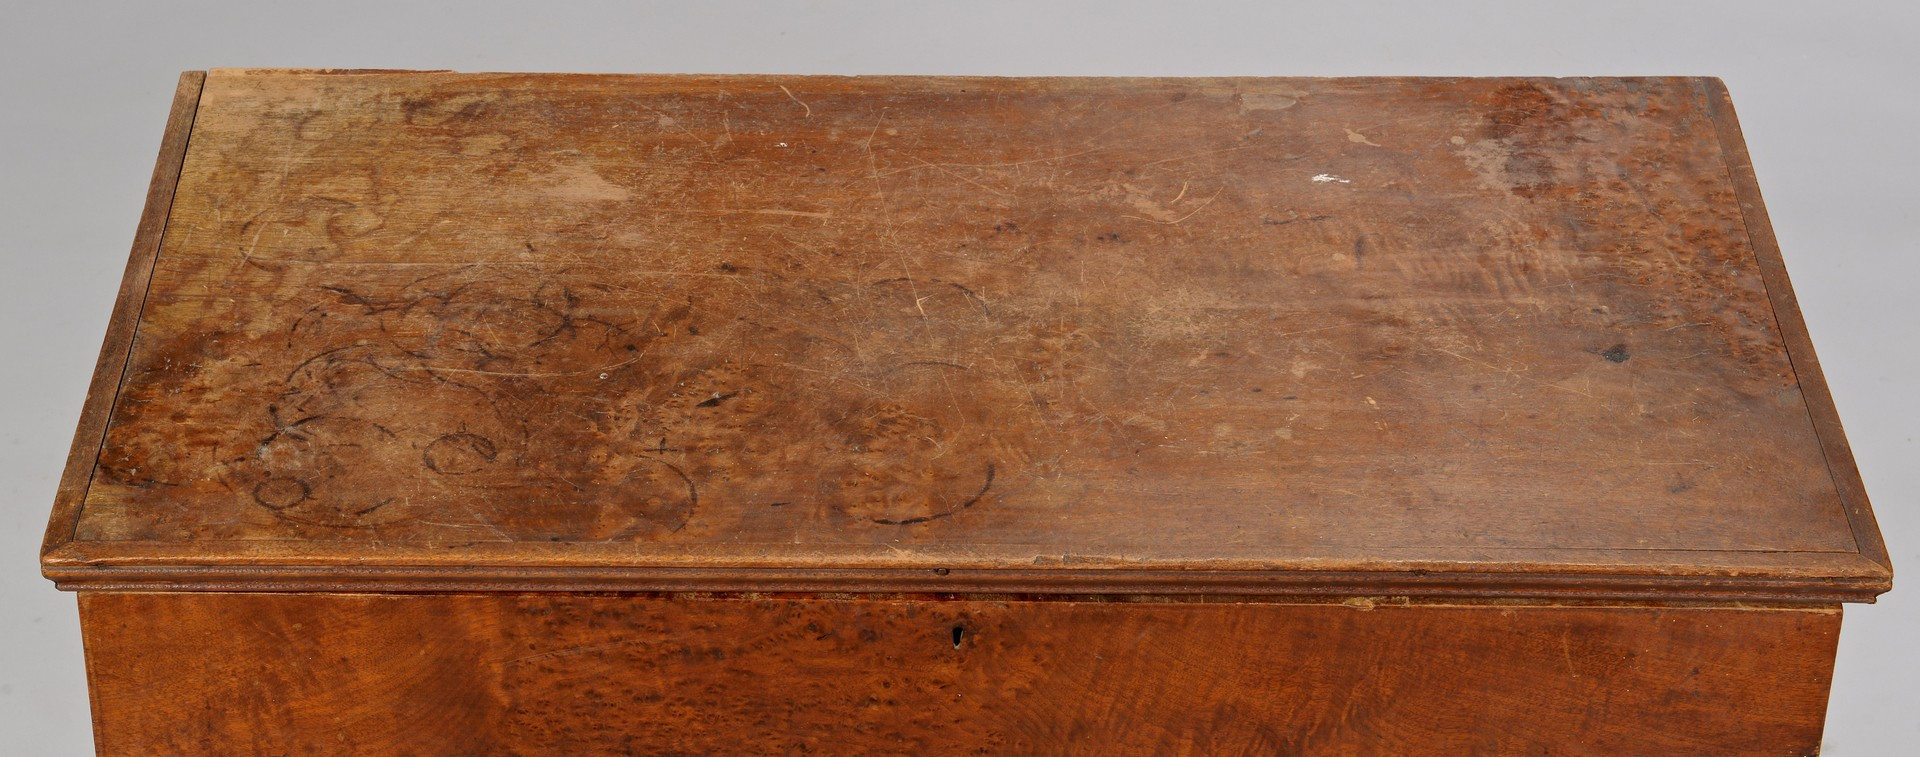 Lot 299: Ohio River Valley Small Walnut Blanket Chest, Dove